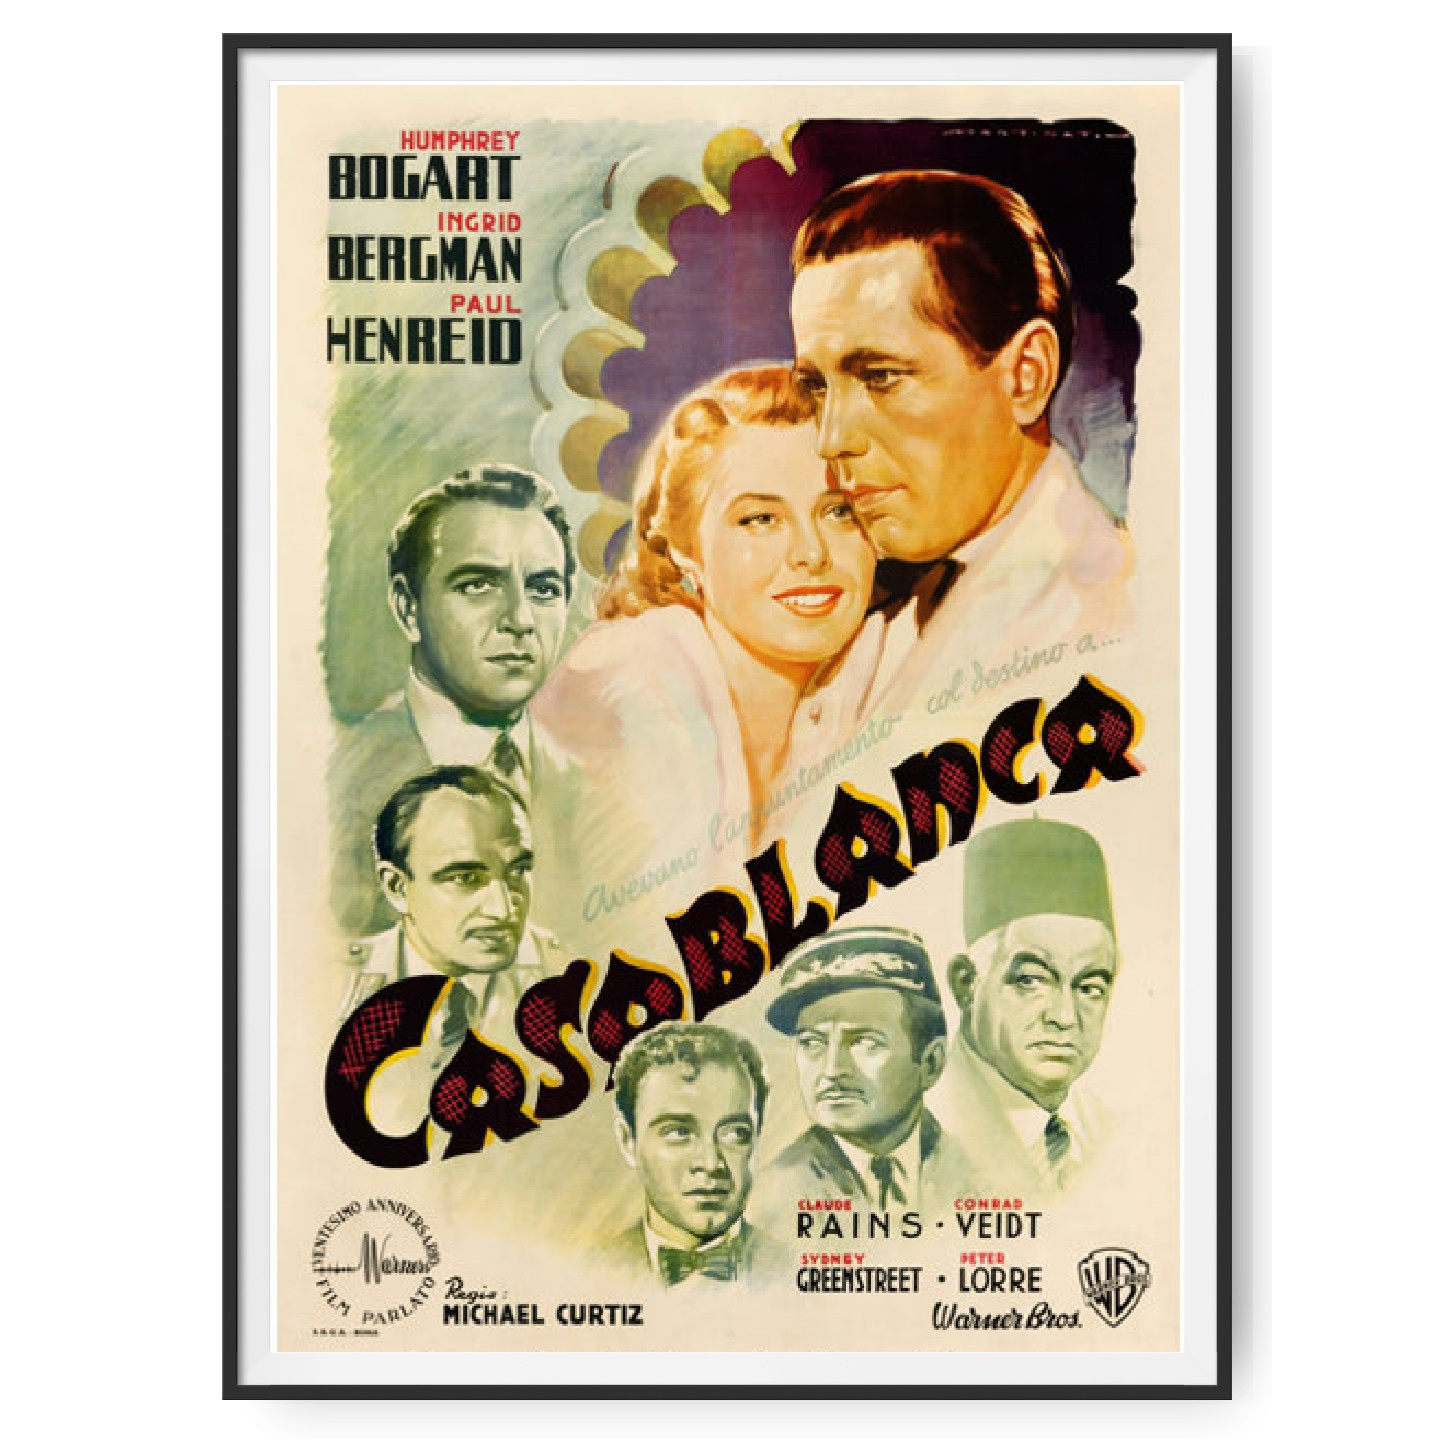 An Italian 4 Foglio poster for the movie Casablanca which sold at auction for over a half a million USD